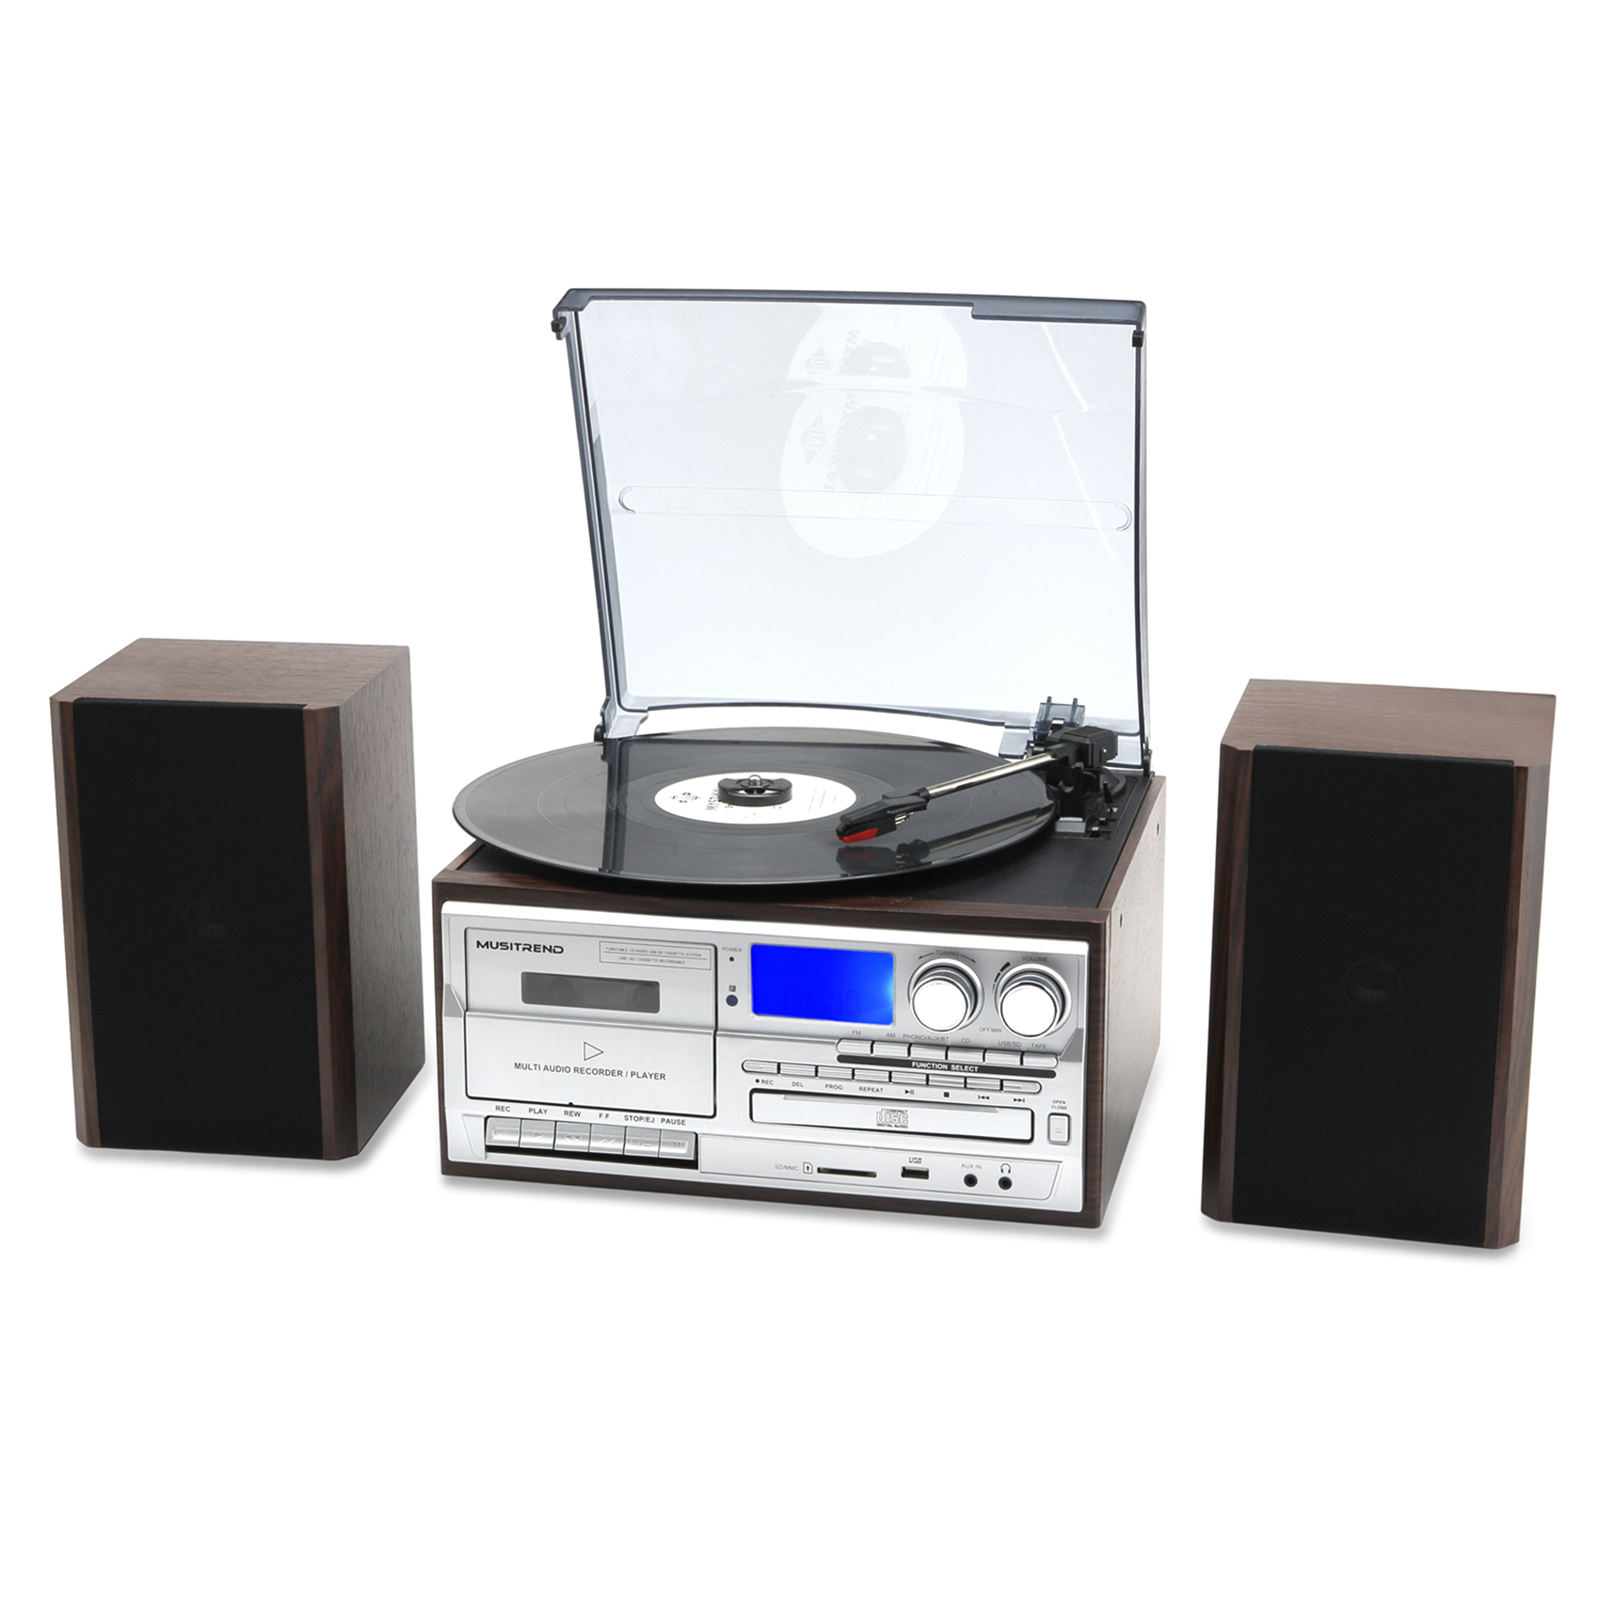 Wanling gramophone 3 speed tocadiscos turntable record player with USB+SD + radio/cassette